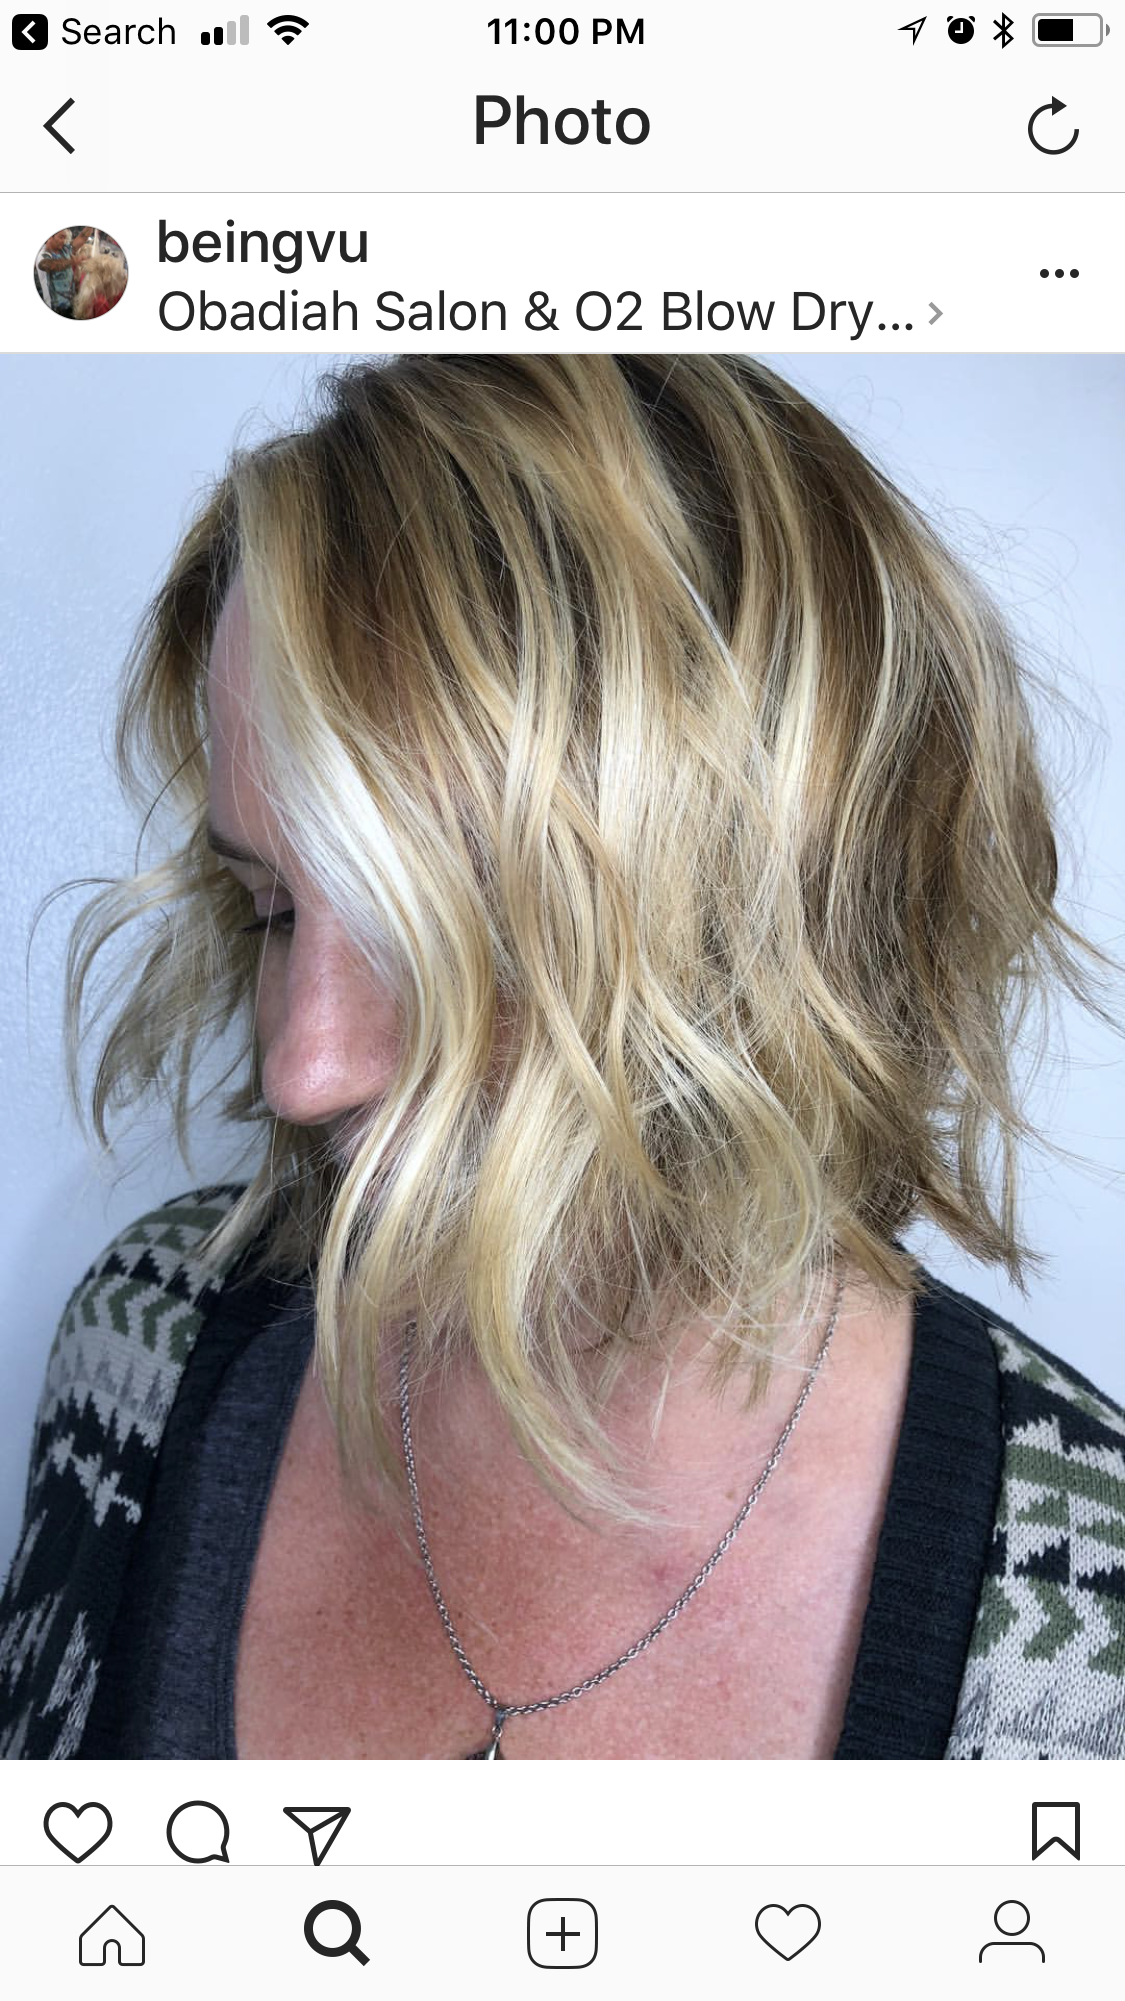 pin by jacqueline smith on hairstyle ideas in 2019 | hair